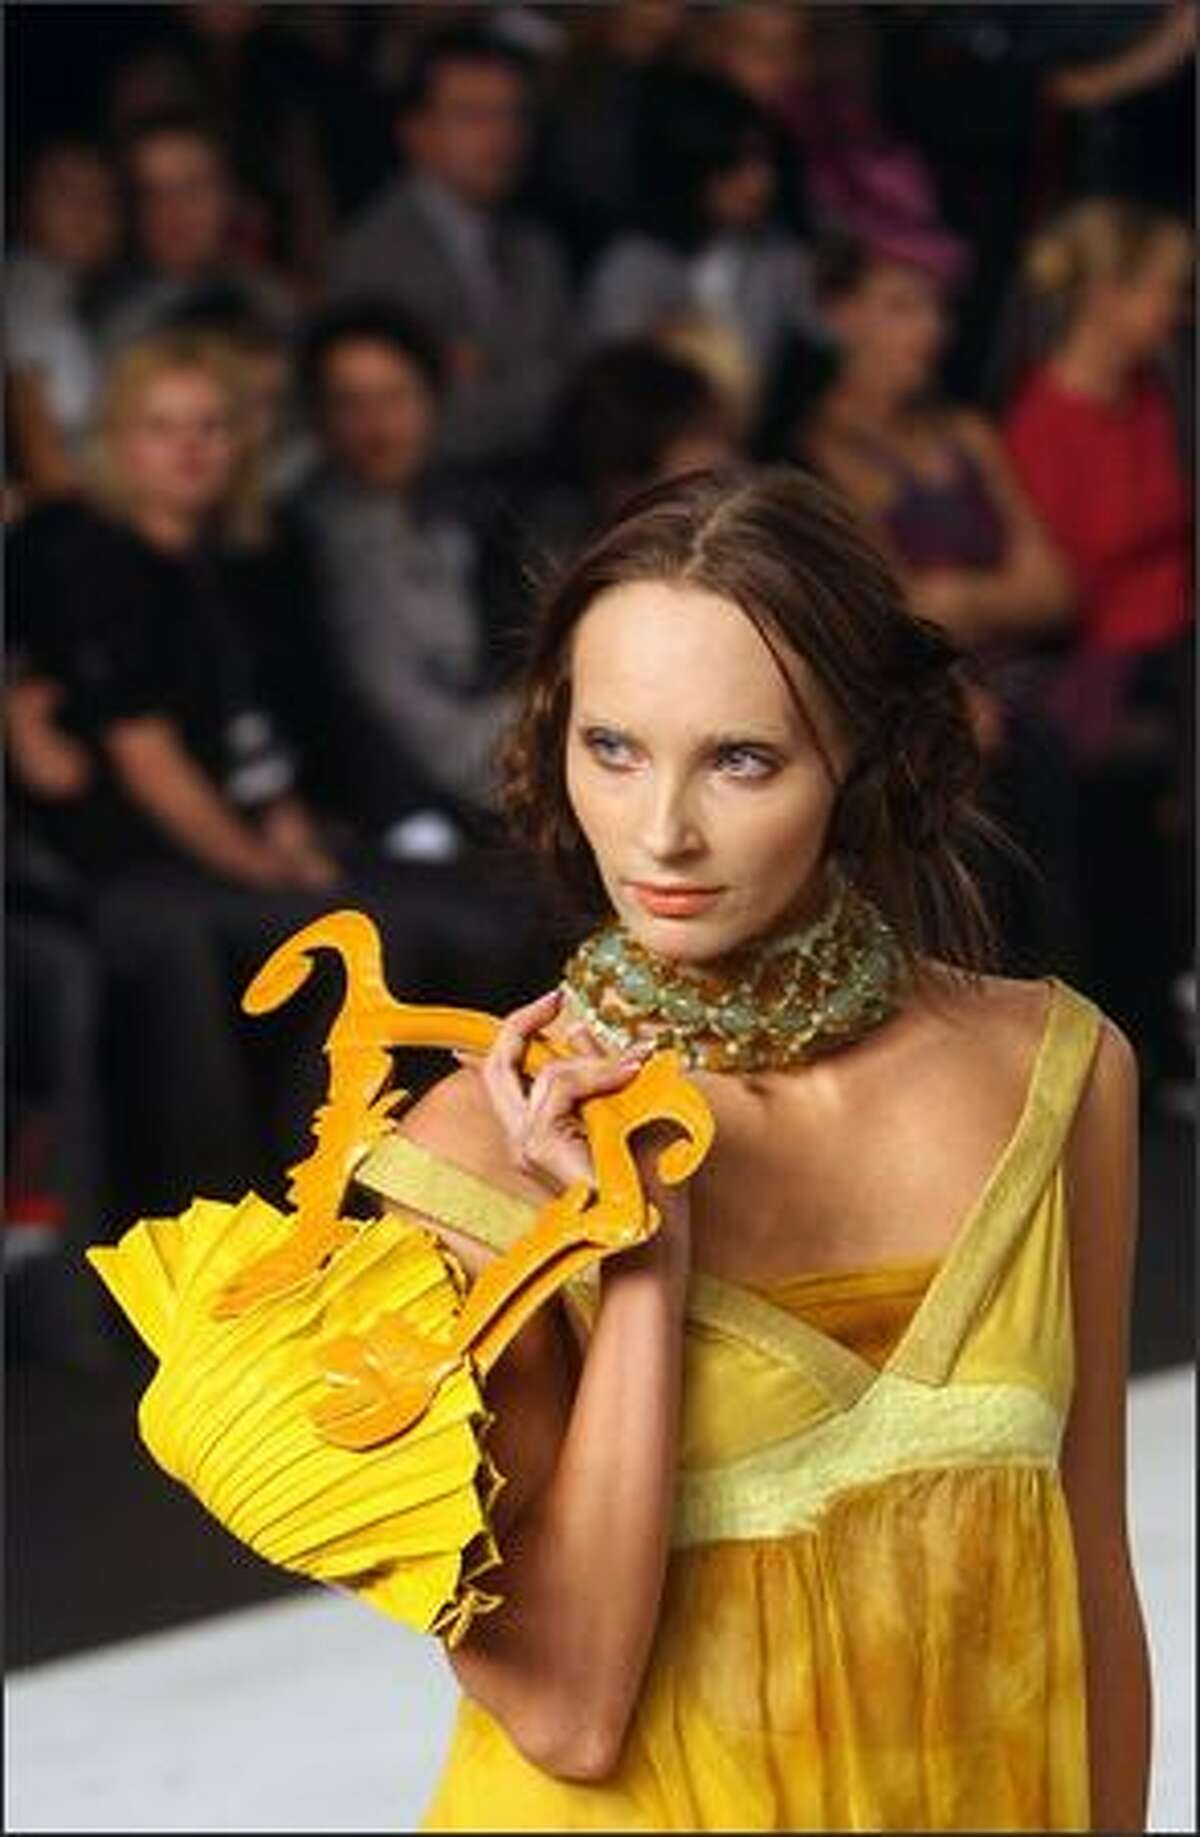 A model displays an outfit from the ready-to-wear collection by popular Ukrainian fashion designer Oksana Karavanska during the opening of Ukrainian Fashion Week 11 October 2007 in Kiev.